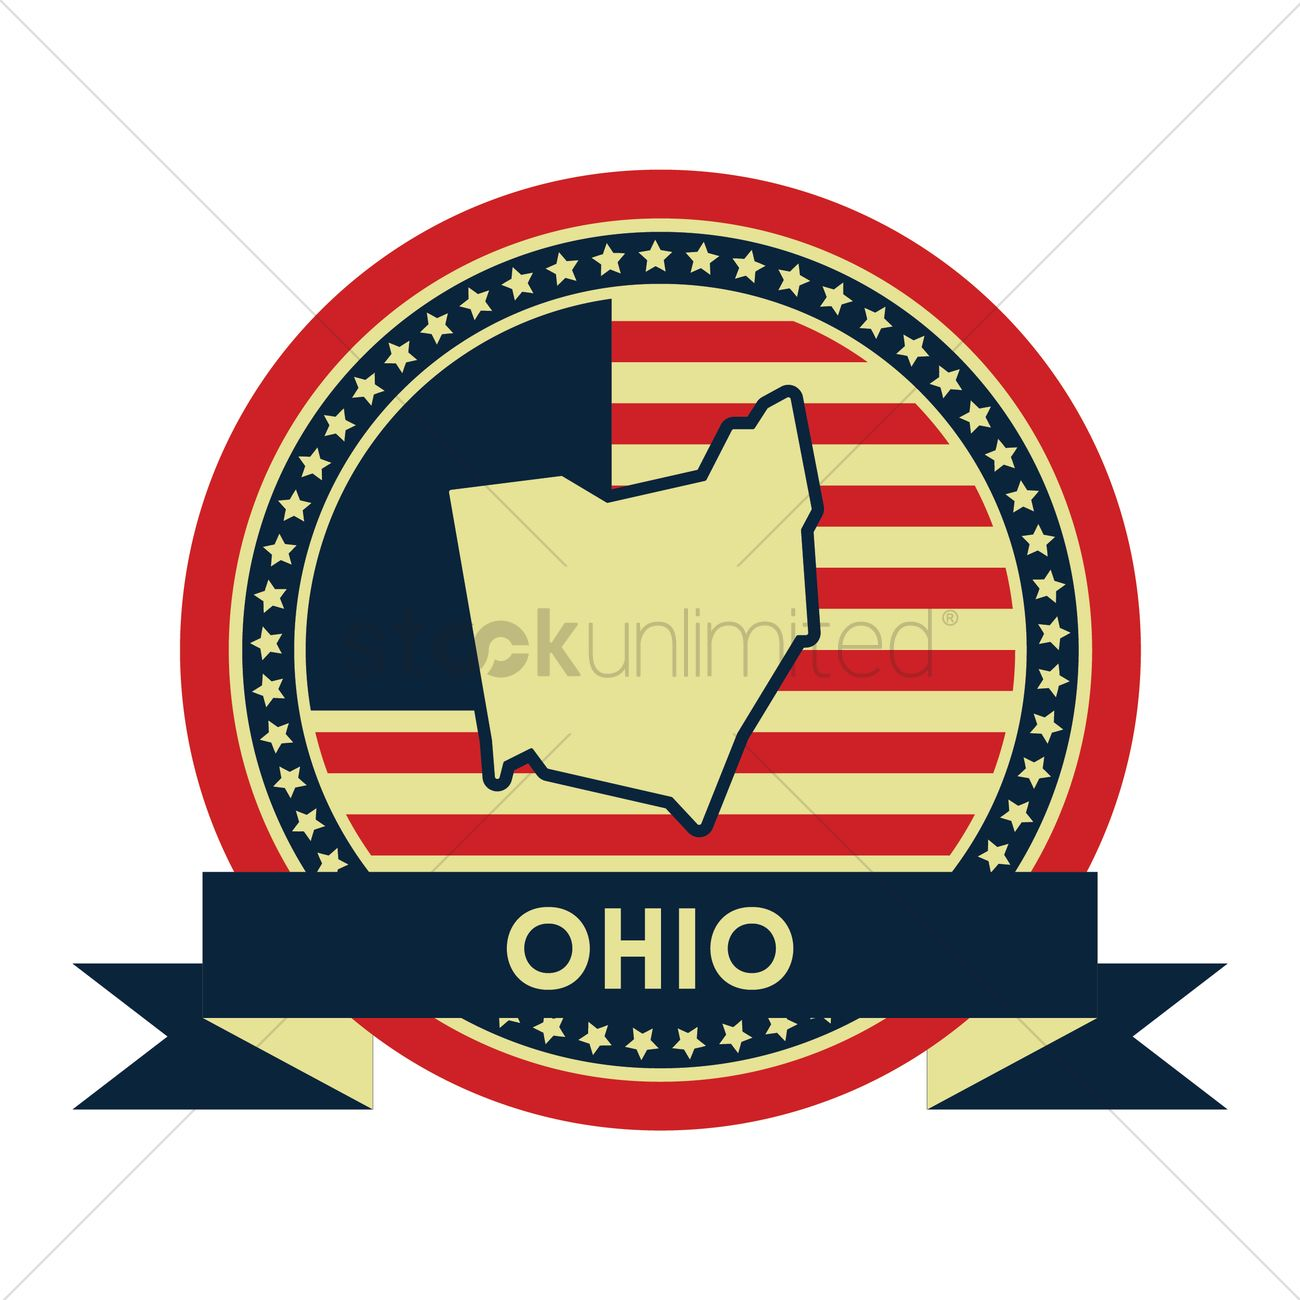 Free Ohio Map.Free Ohio Map Label Vector Image 1617923 Stockunlimited